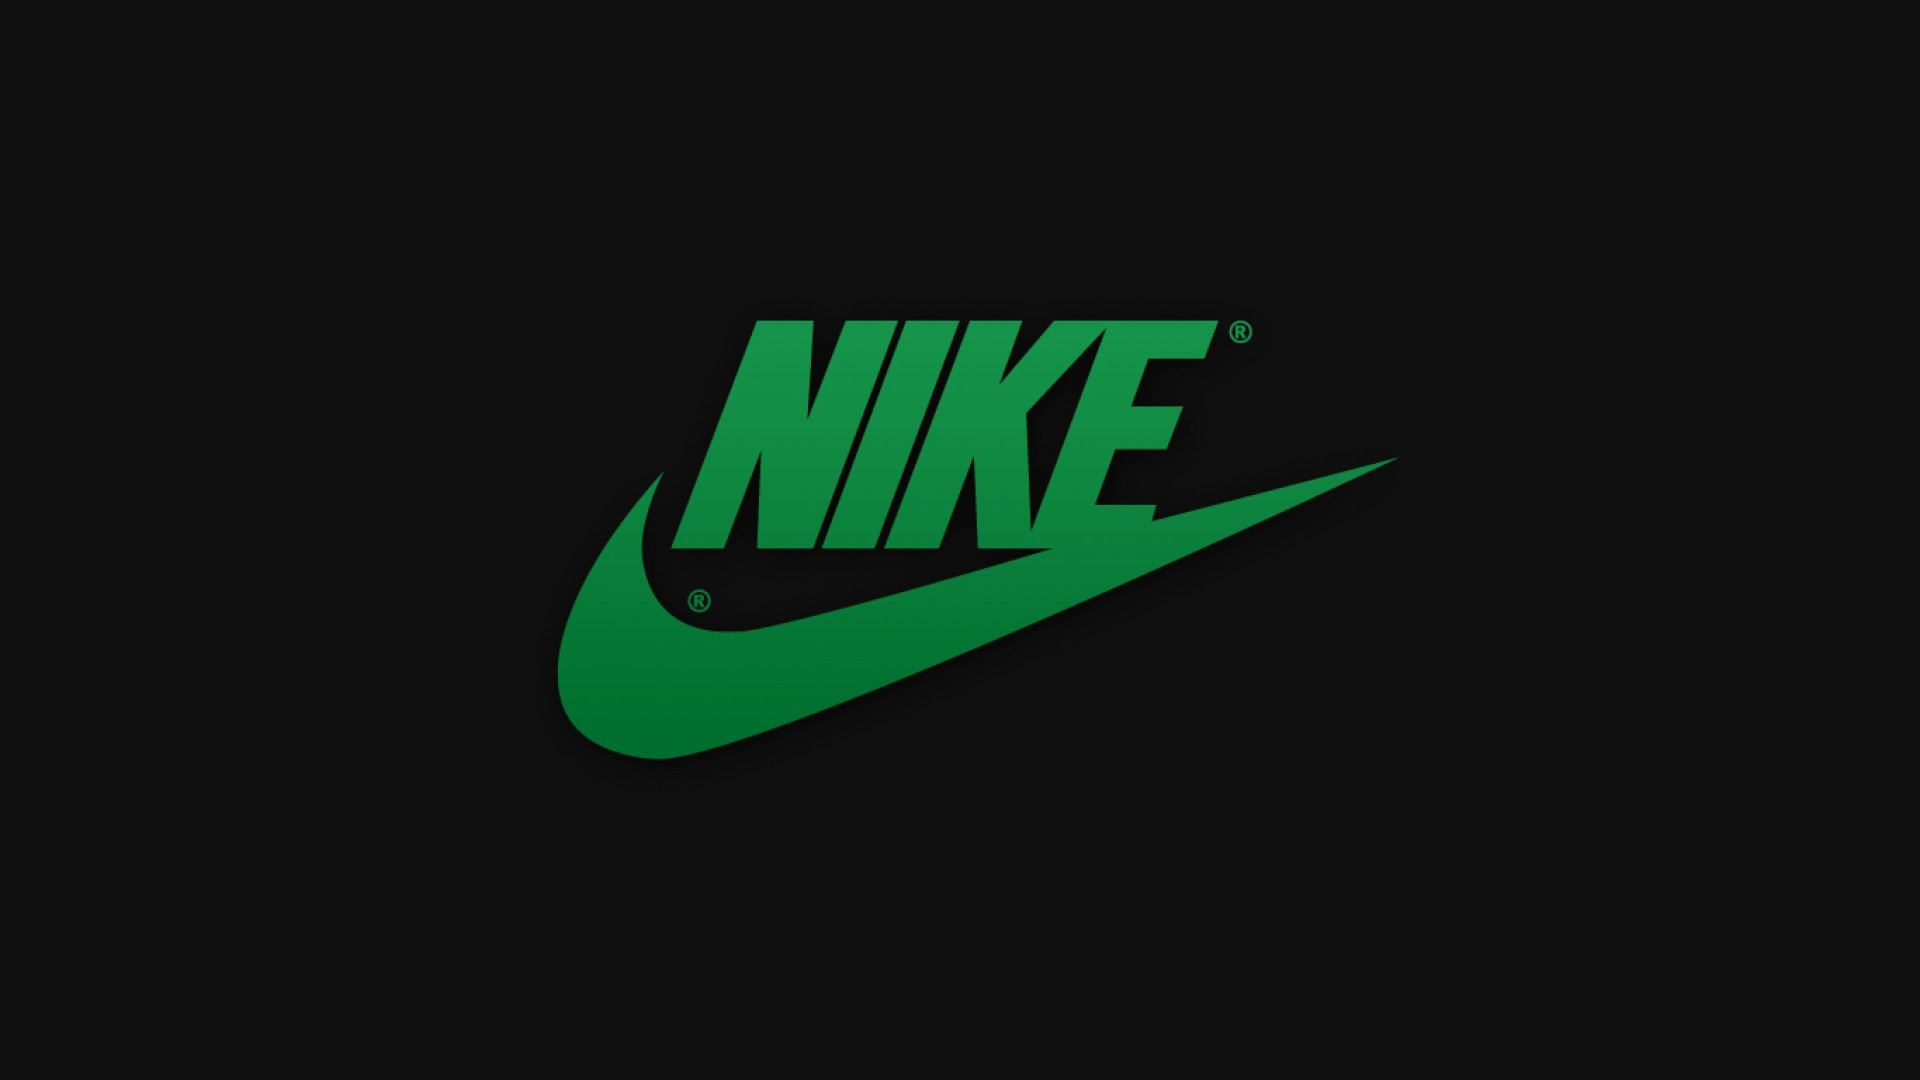 Green Nike Logo Wallpaper HD 5 High Resolution Wallpaper Full Size 1920x1080